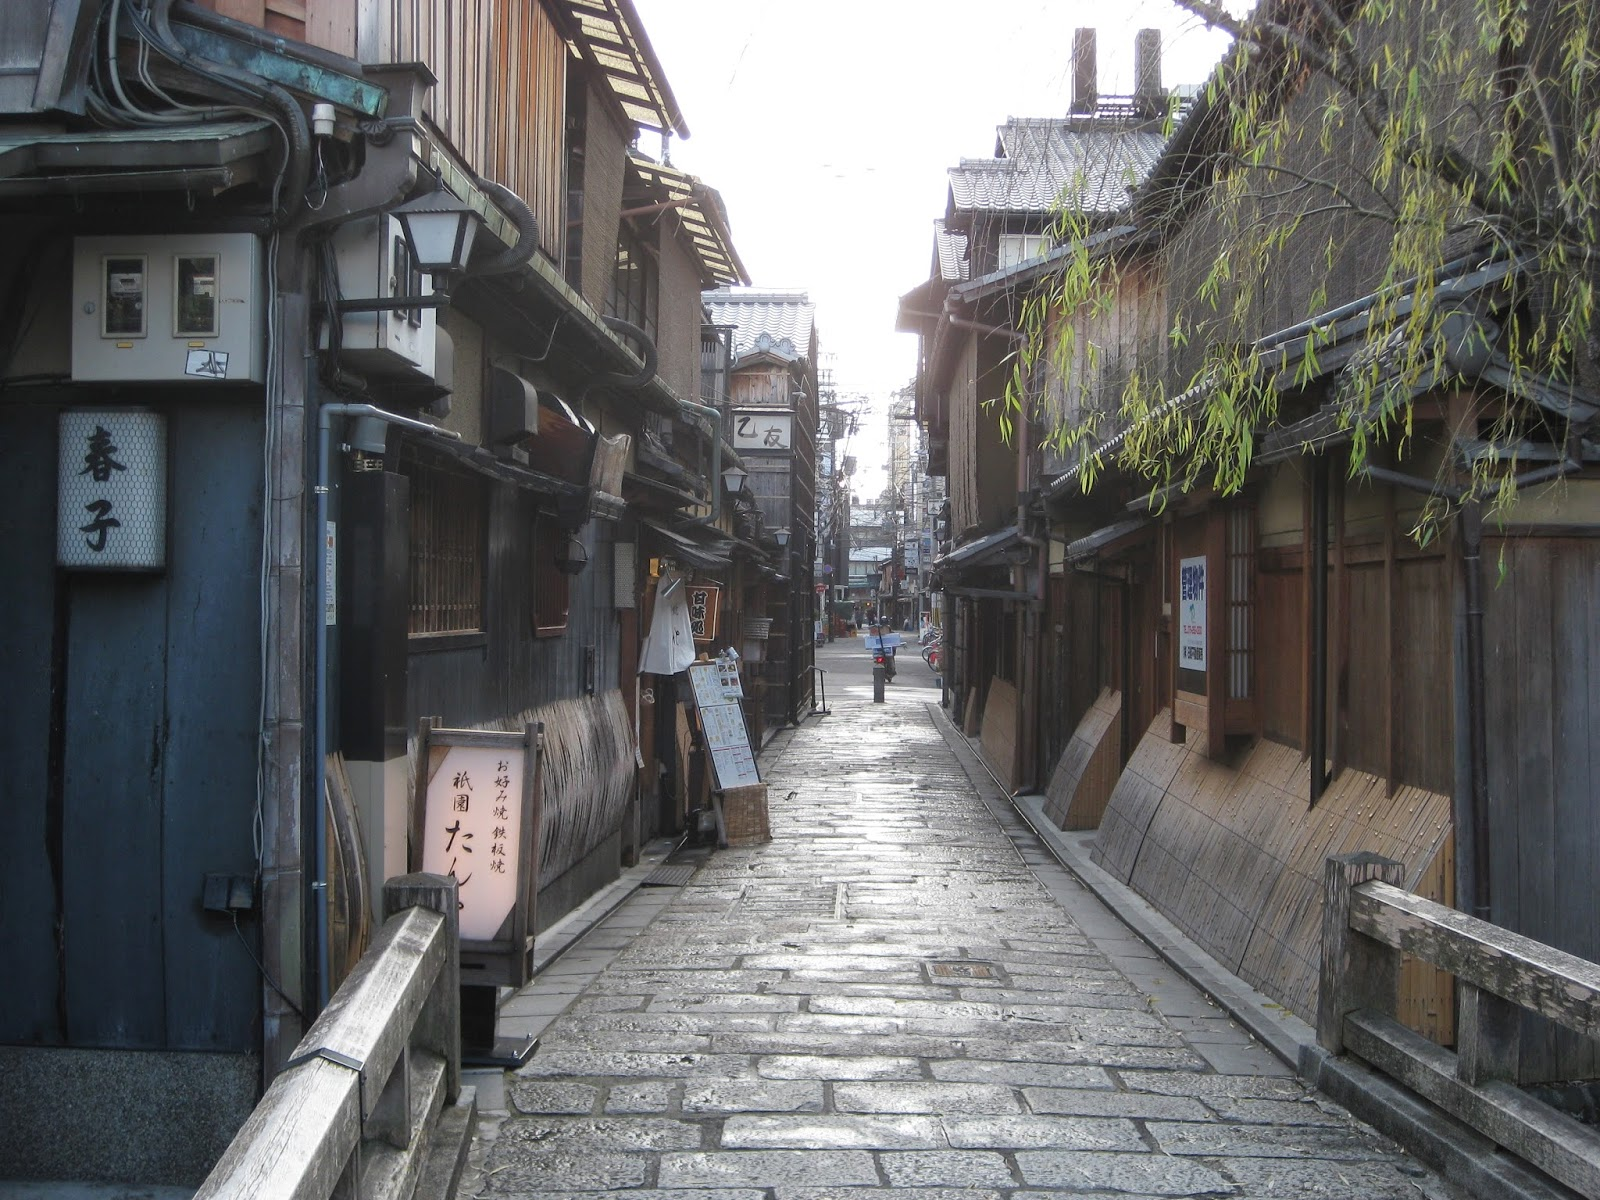 Kyoto - Streets in the Gion district